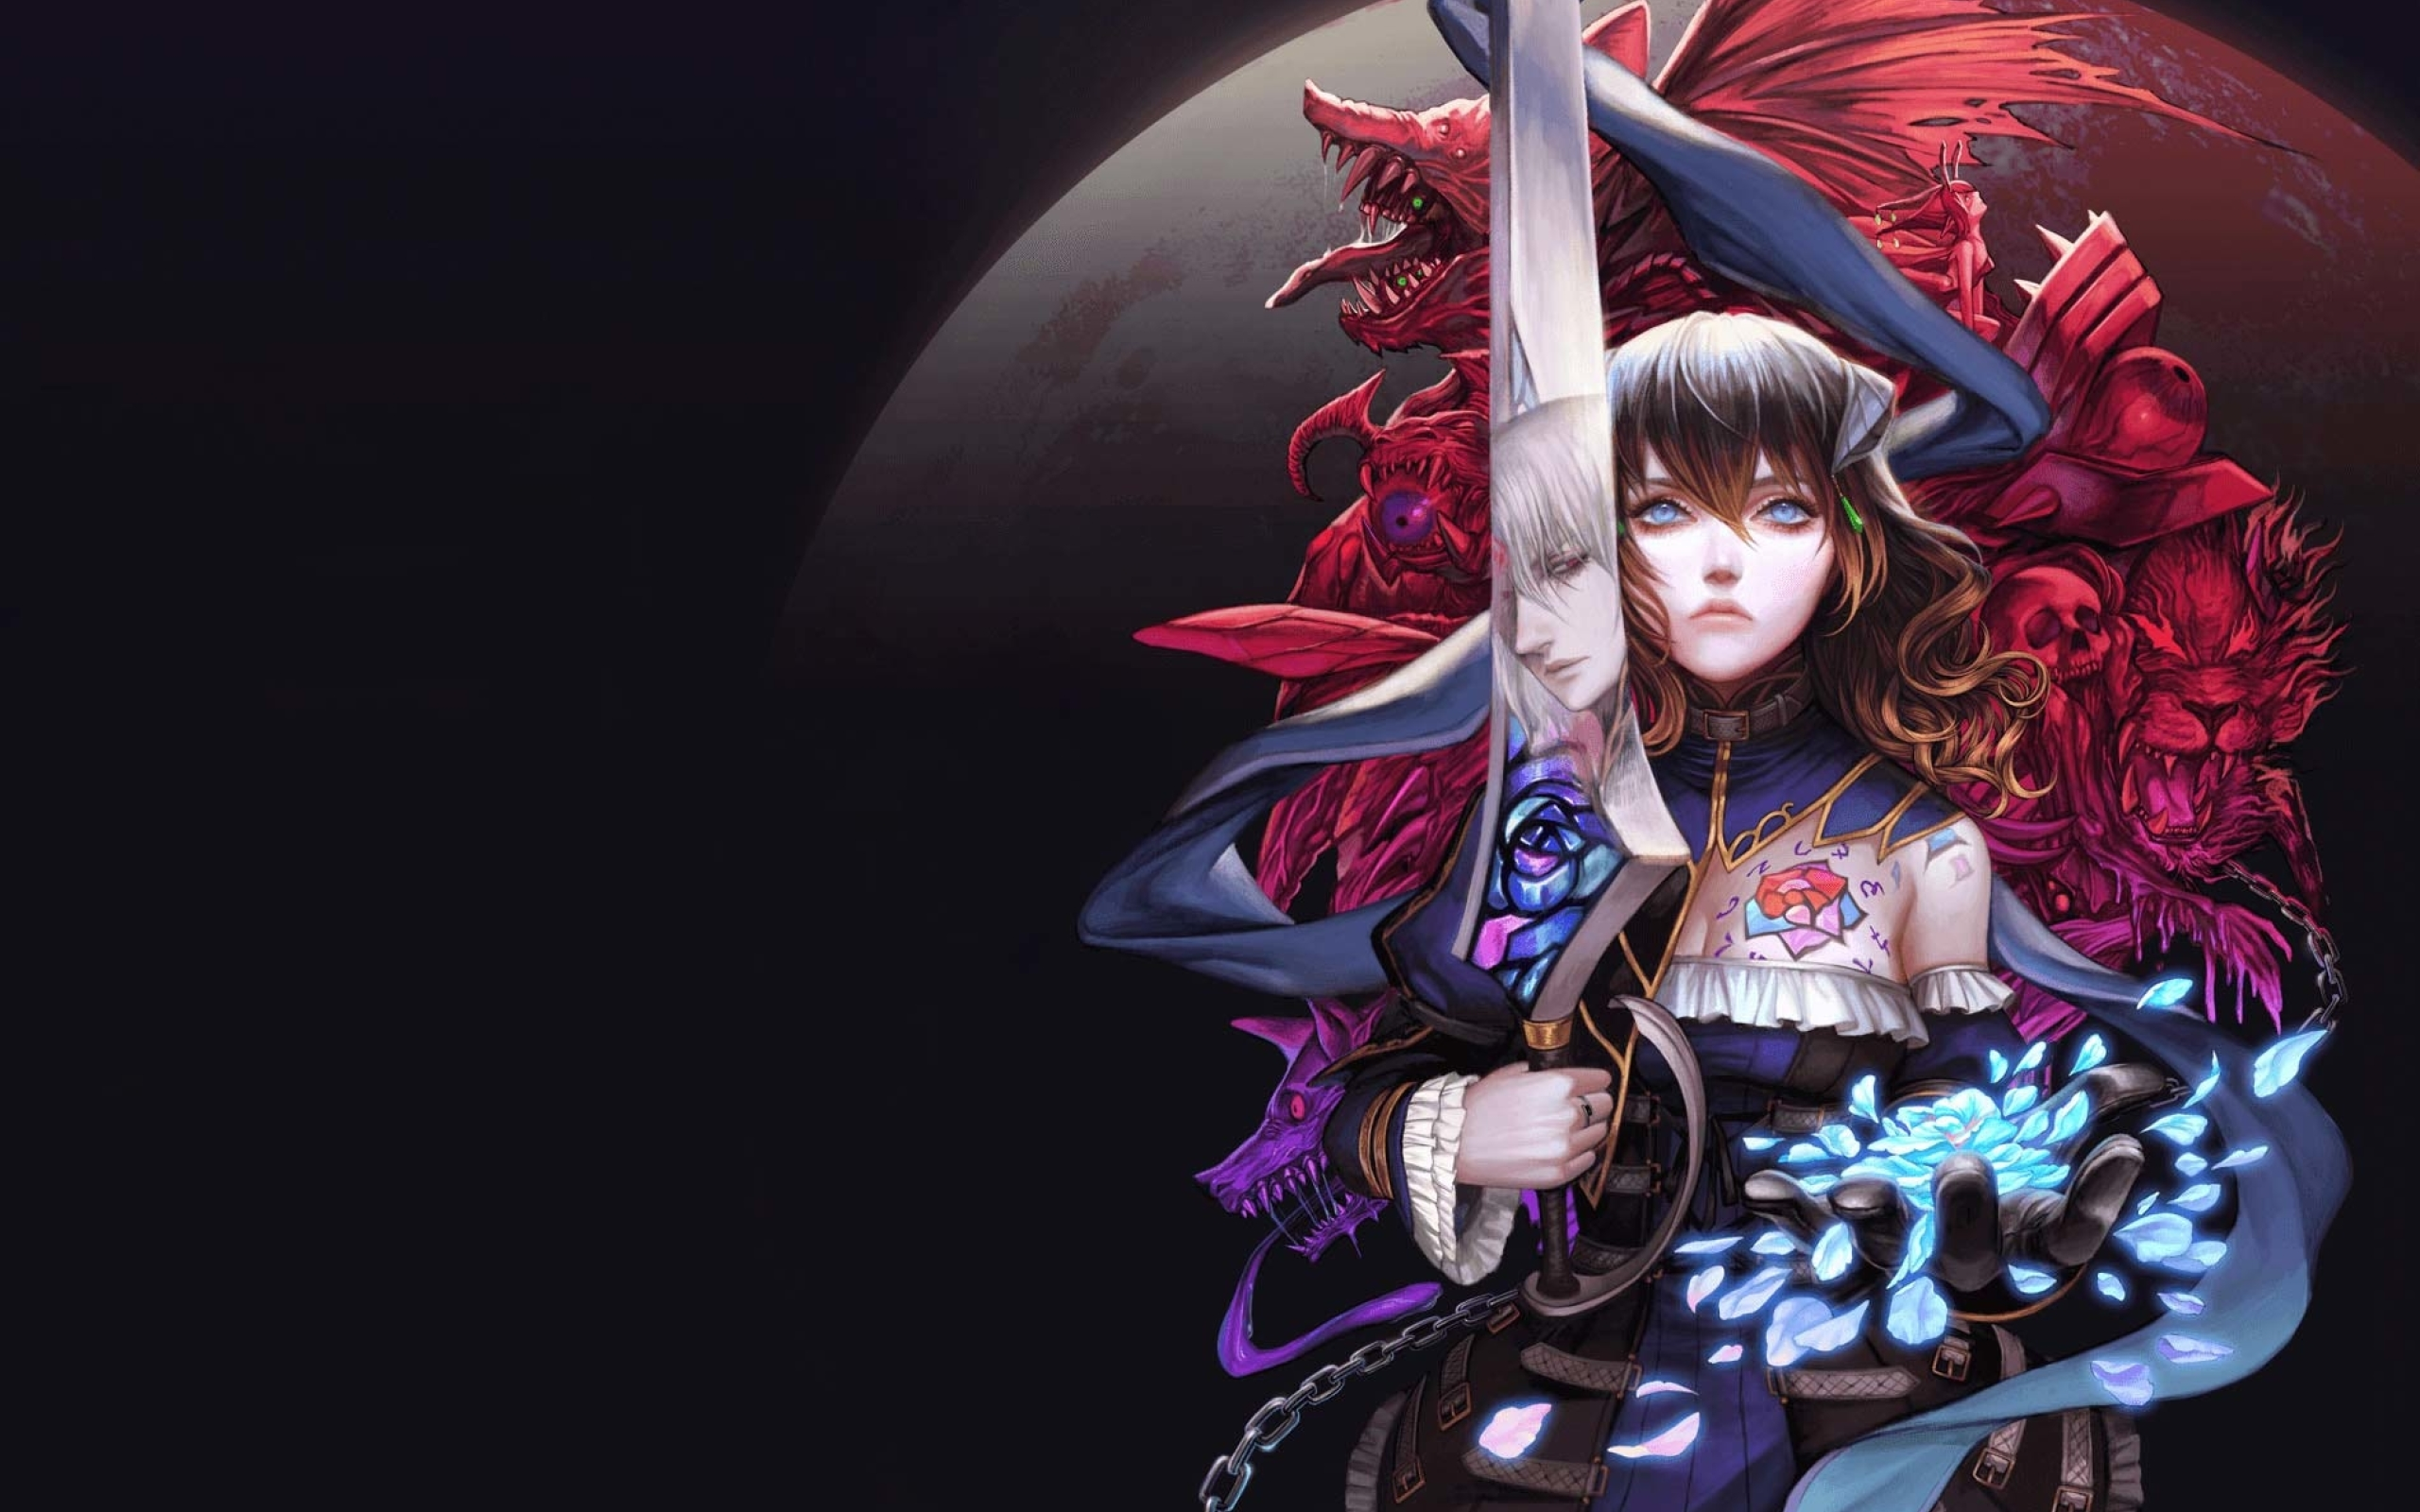 2560x1600 Bloodstained Ritual of the Night 2560x1600 ...